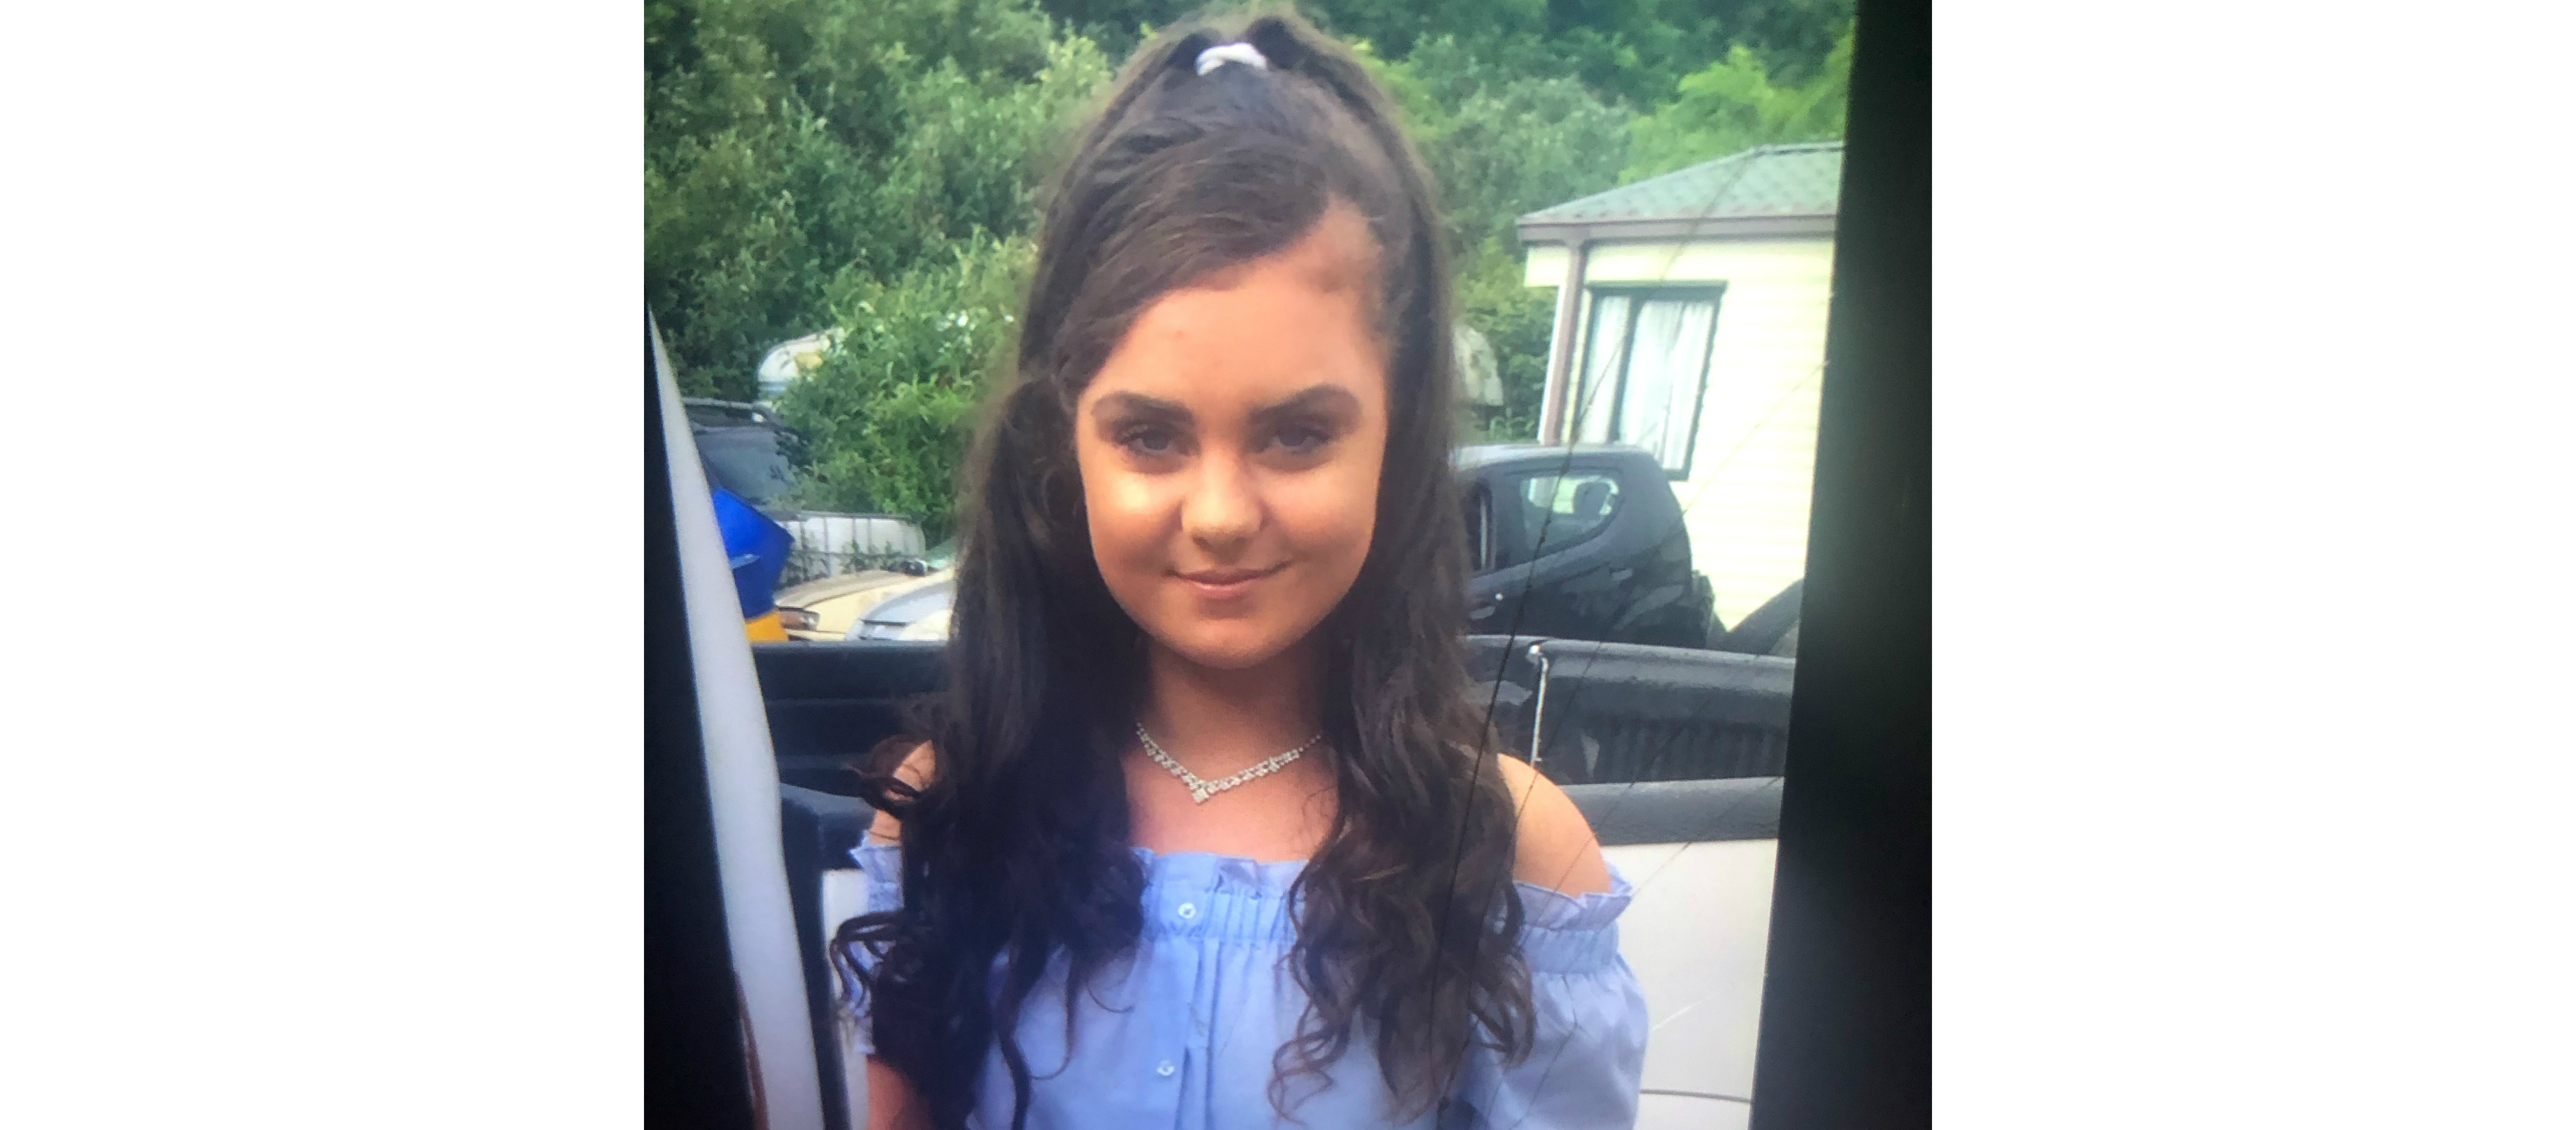 Gardaí in Finglas Search for Missing Teen